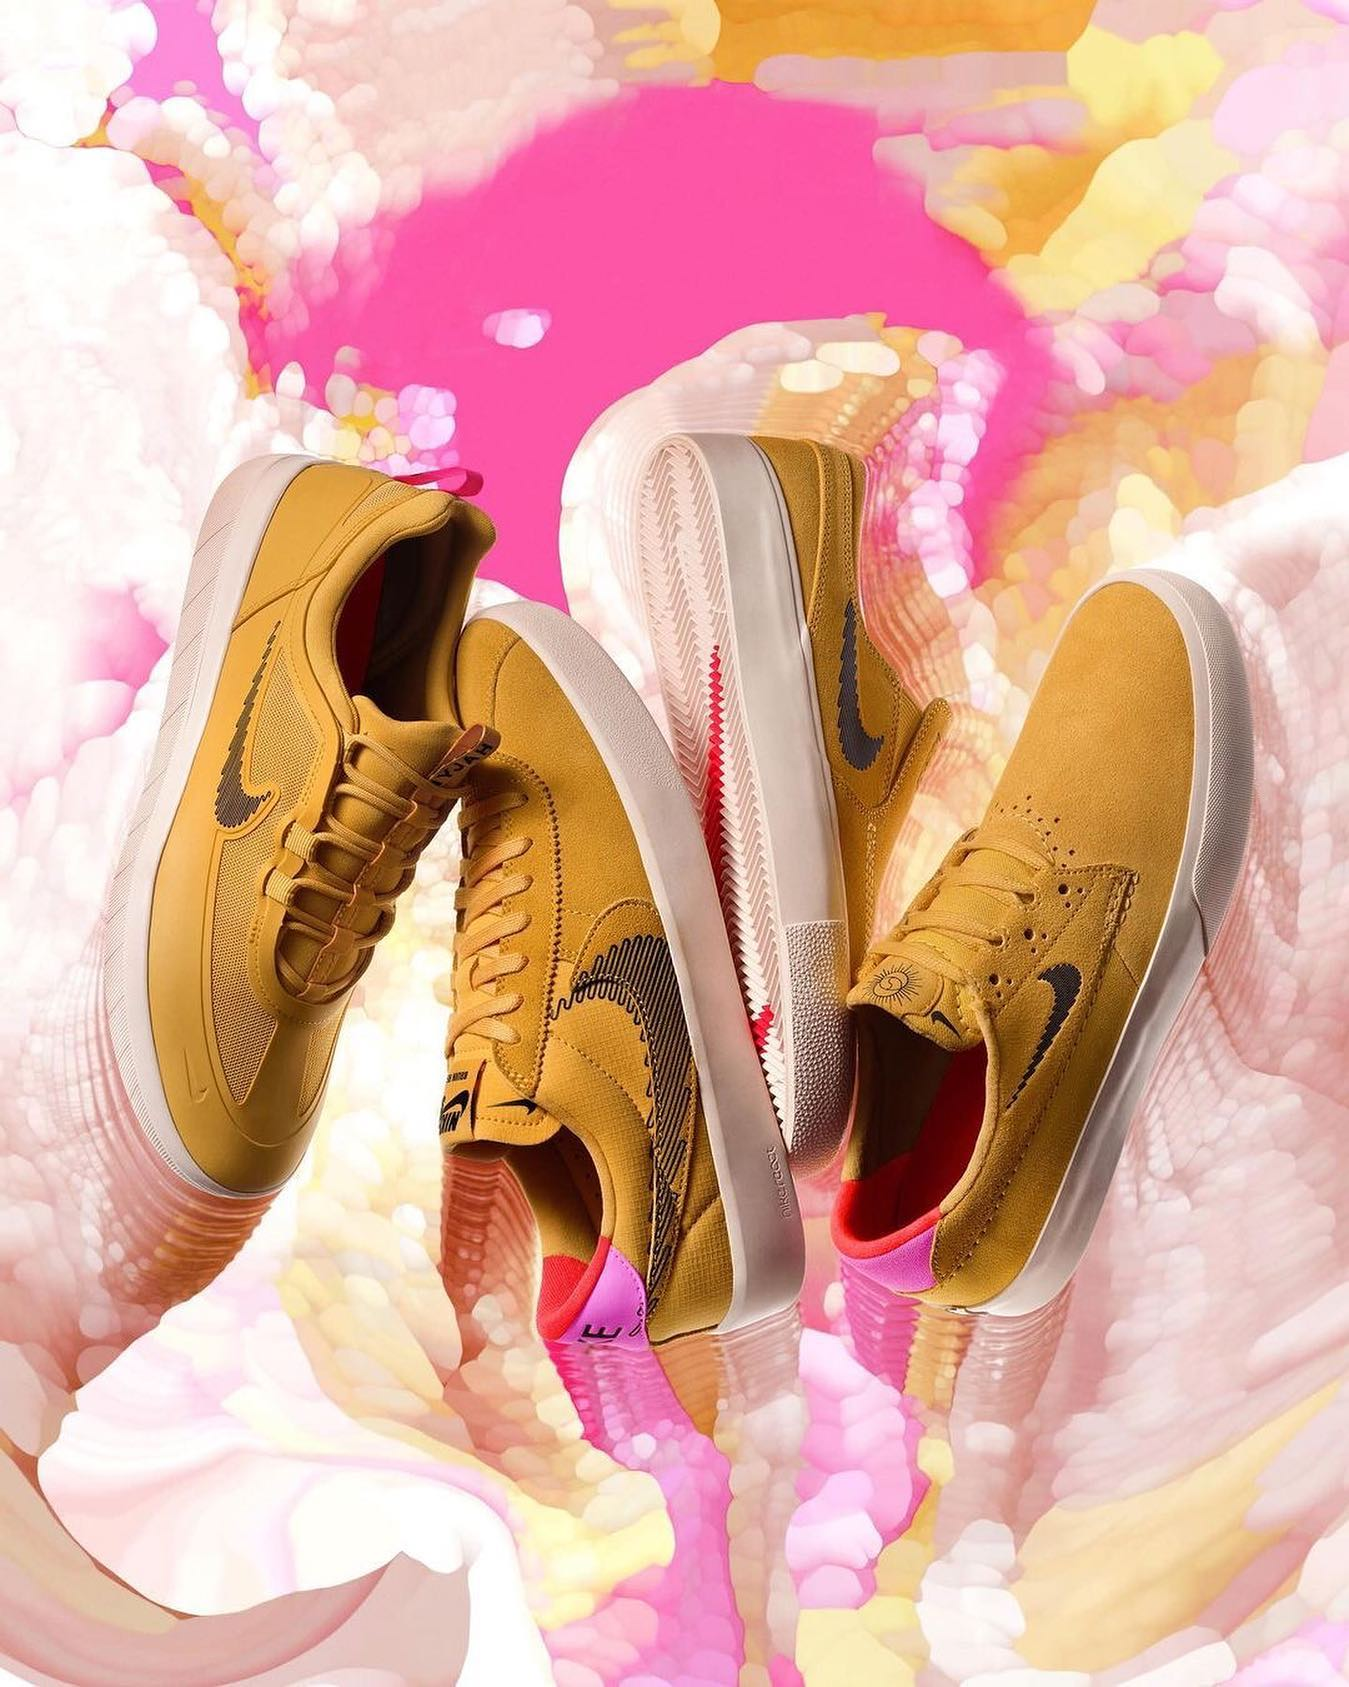 Pollen Pack@nikesb  A pop of pollen This is the Nyjah Free 2, Bruin React T, Janoski Slip, and Shane T Pollen Pack.Available now in @instant_kichijoji @instant_odaiba @instant_shibuya @instant_shizuoka @instant_chiba @instant_skateboards